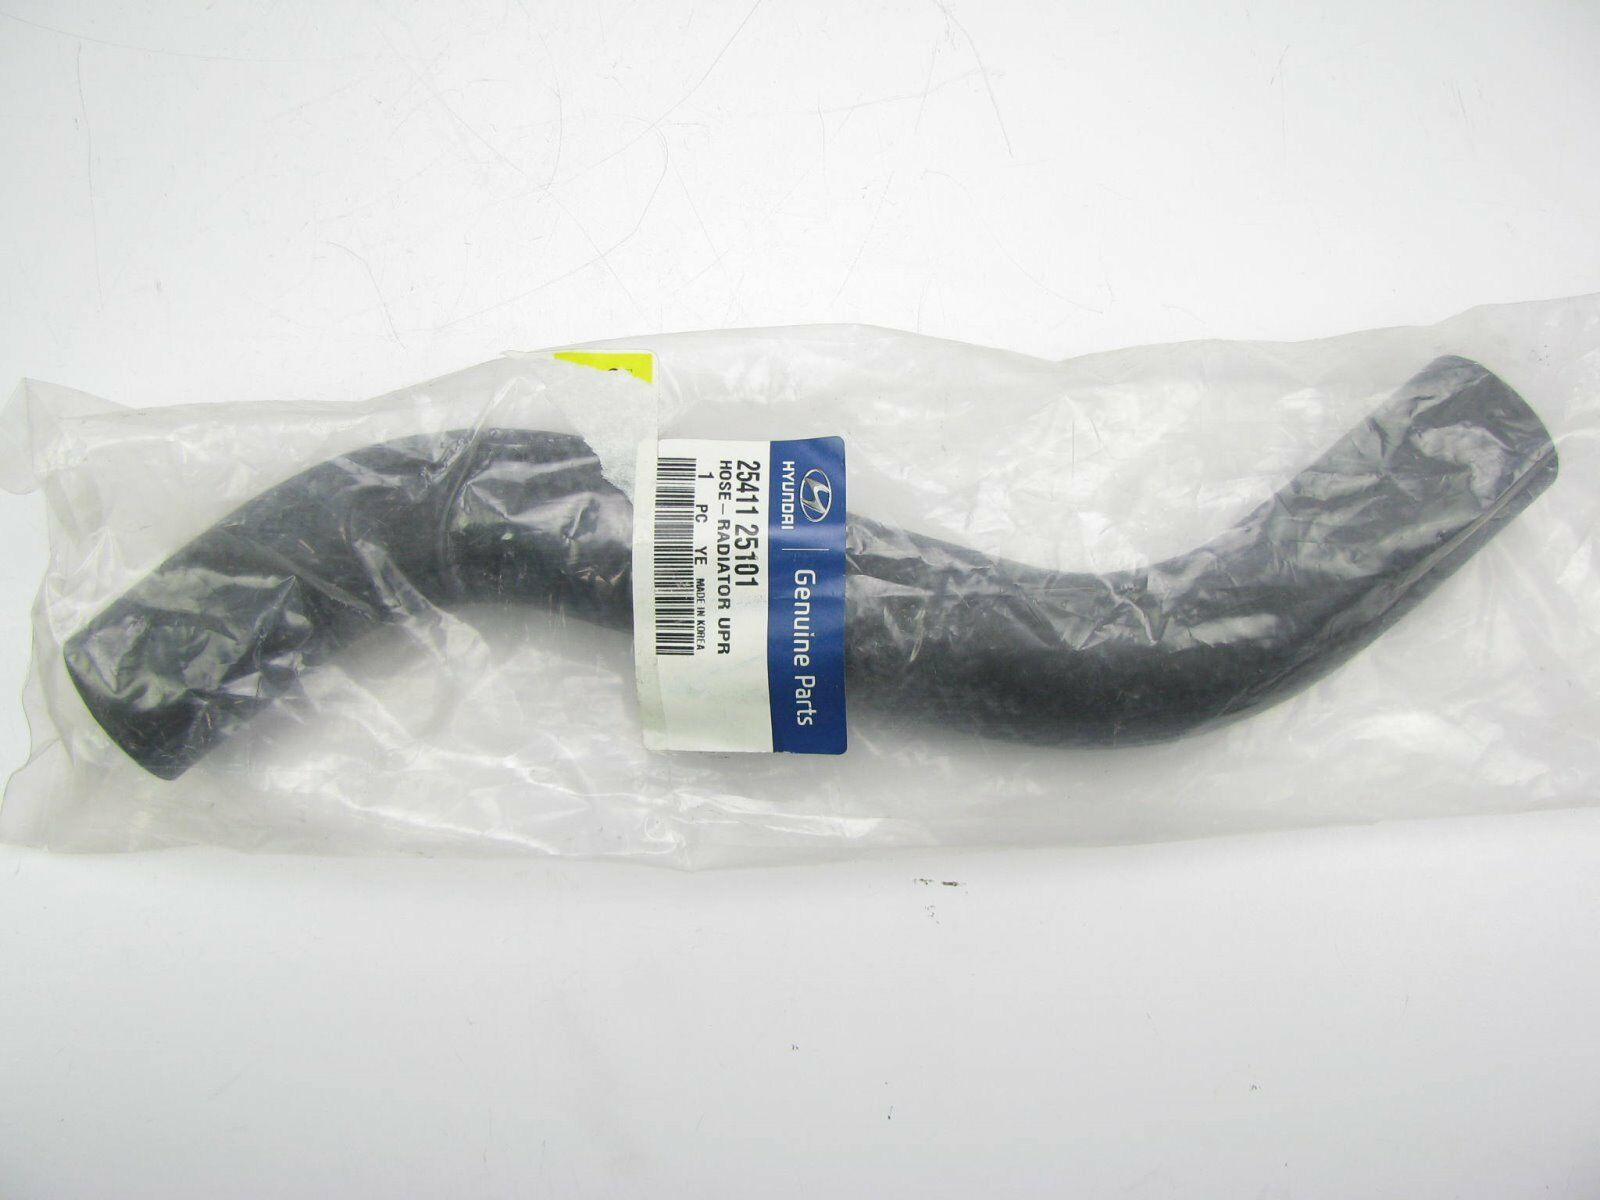 New Genuine Upper Radiator Coolant Hose Oem For 04 05 Hyundai Accent Kia Rio 1 Of 4only 2 Available